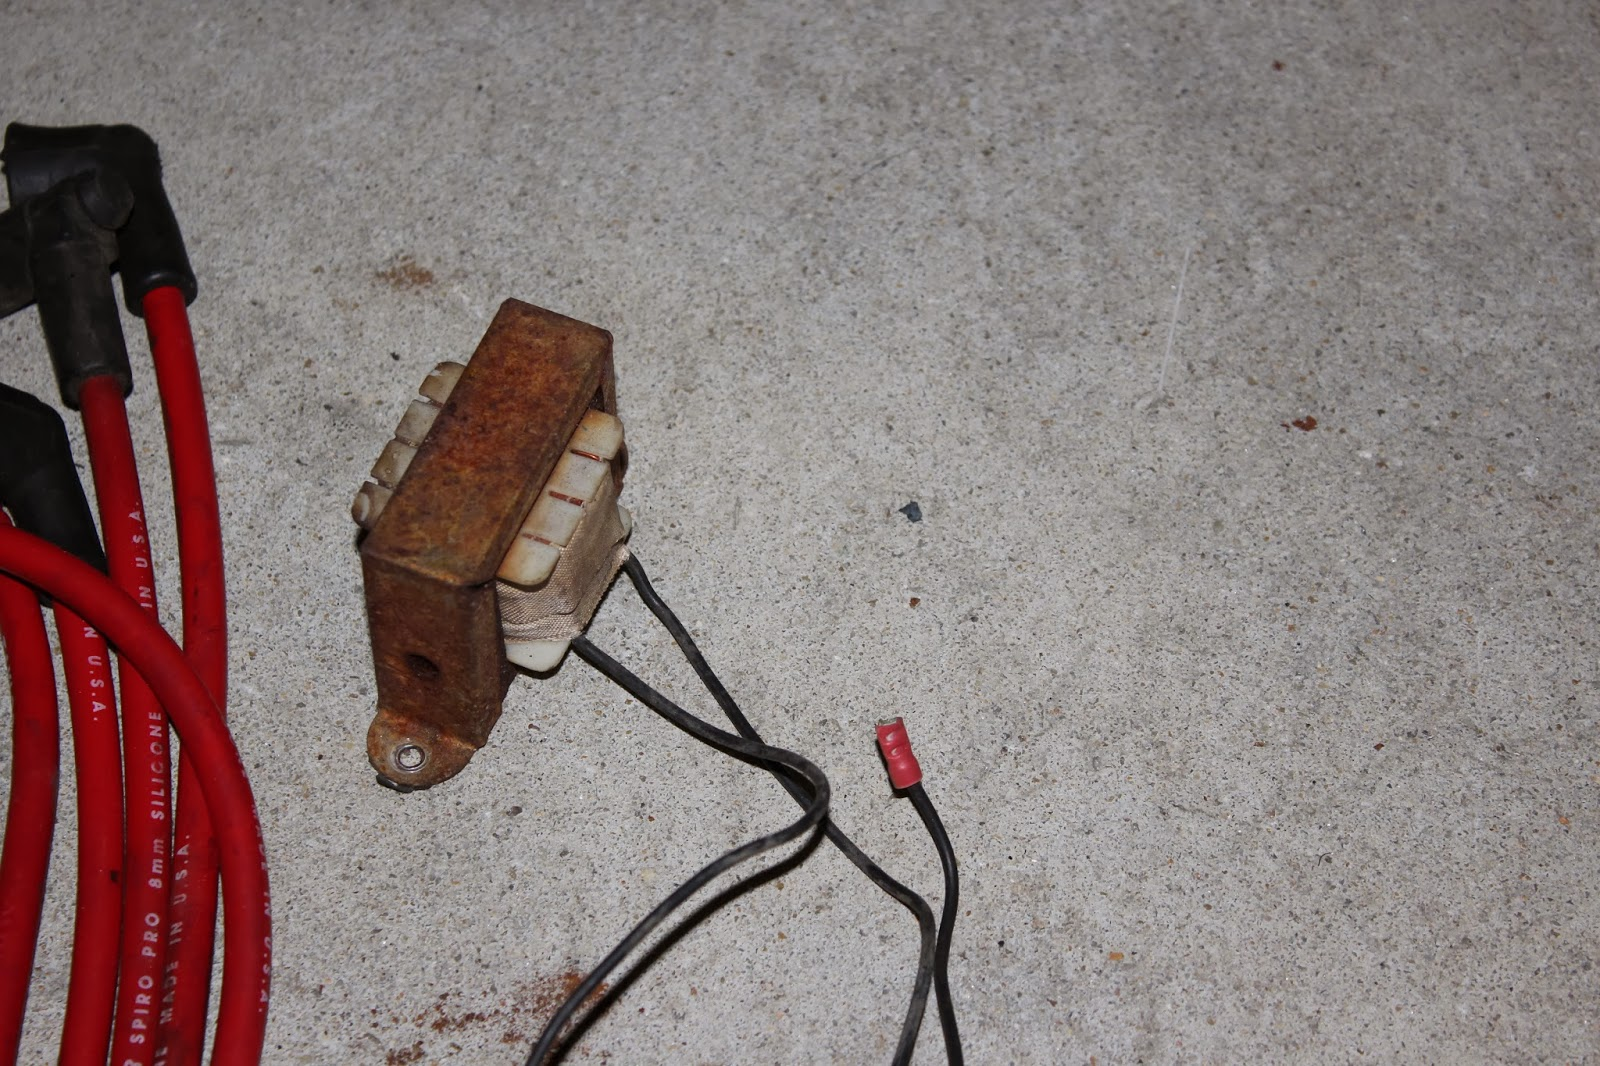 1971 Saab Sonett Iii Restoration Wiring Wire Harness Labeled Random Transformer That Was Wired In Parallel With The Distributor It Seems Dingus